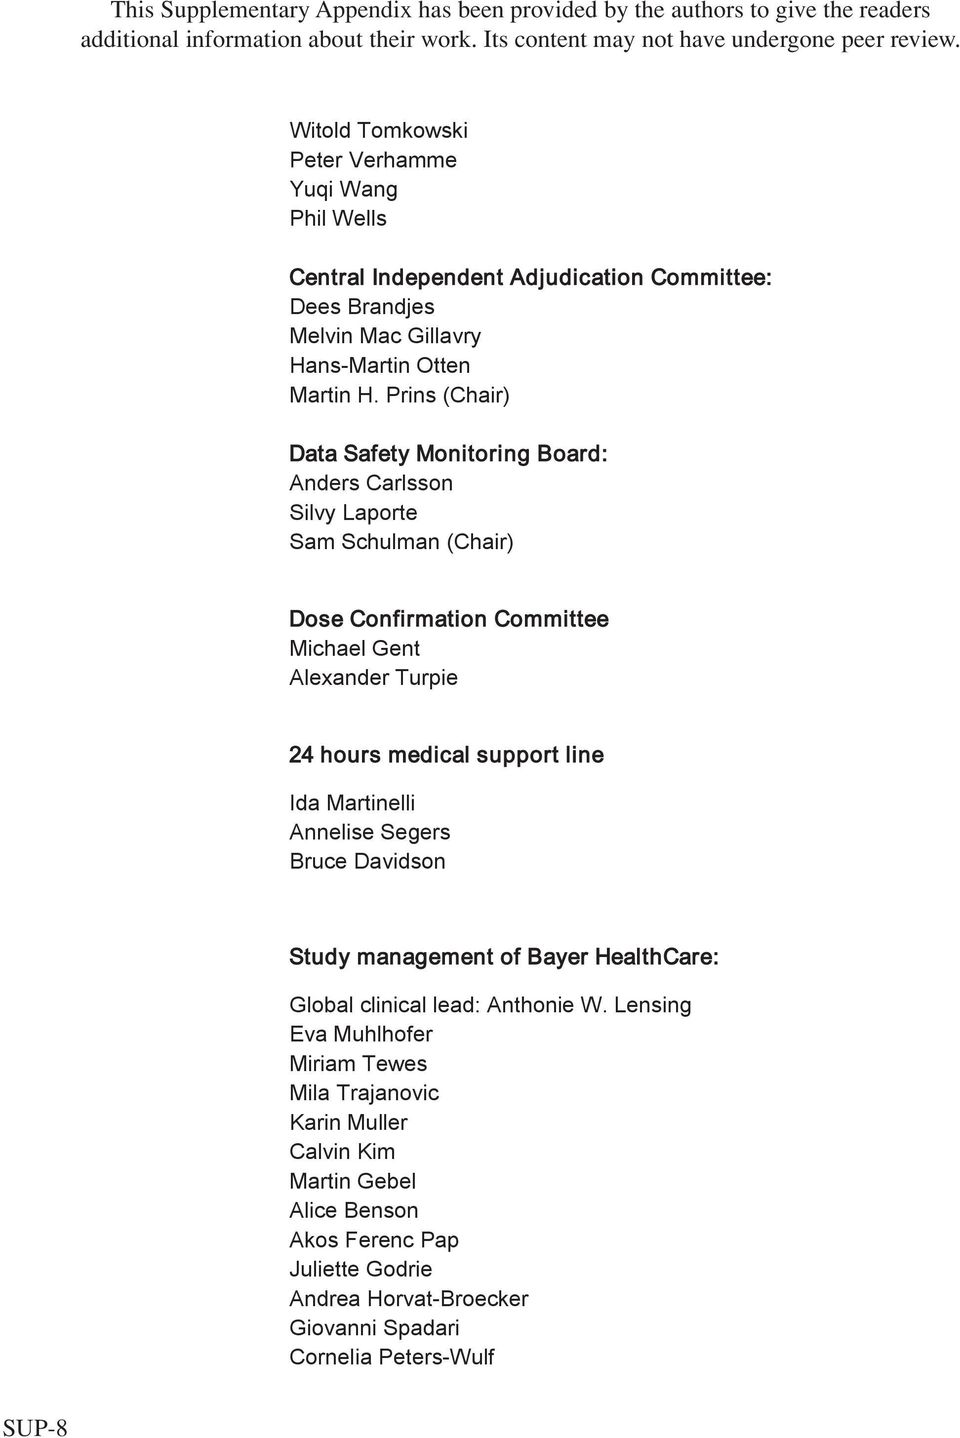 Prins (Chair) Data Safety Monitoring Board: Anders Carlsson Silvy Laporte Sam Schulman (Chair) Dose Confirmation Committee Michael Gent Alexander Turpie 24 hours medical support line Ida Martinelli